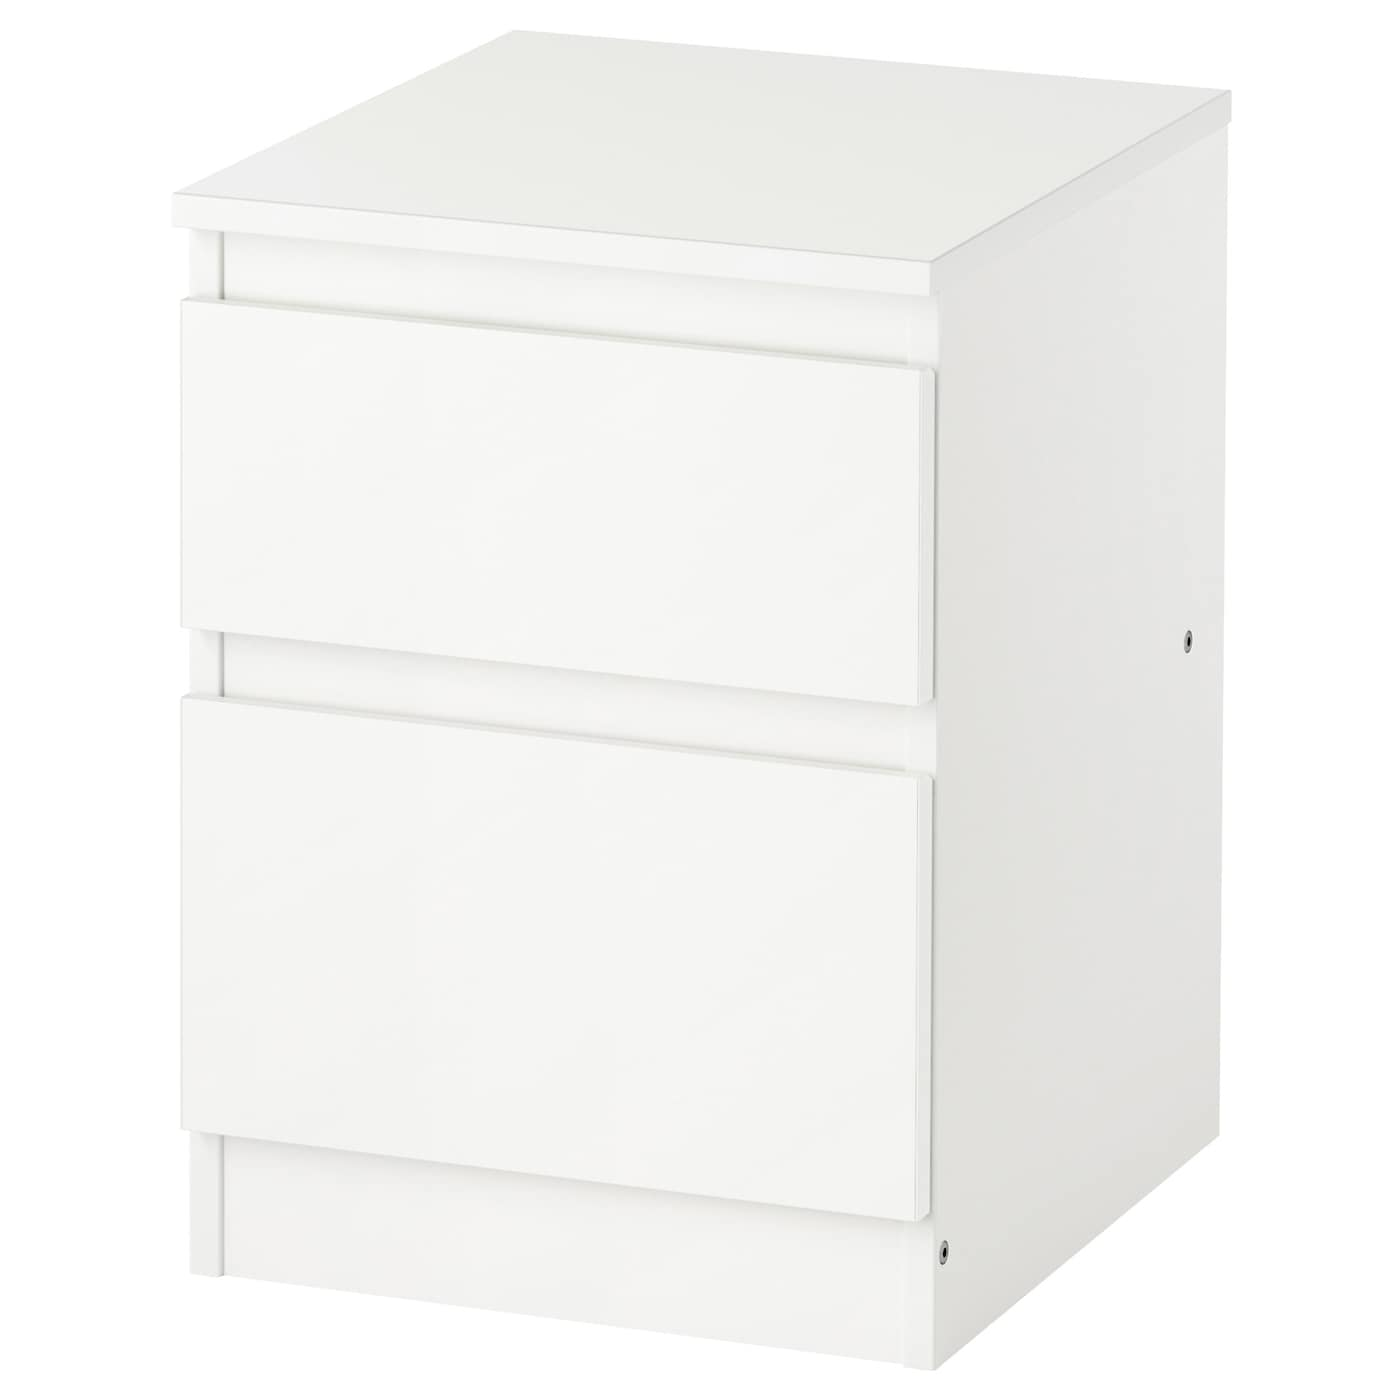 kullen commode 2 tiroirs blanc 35 x 49 cm ikea. Black Bedroom Furniture Sets. Home Design Ideas